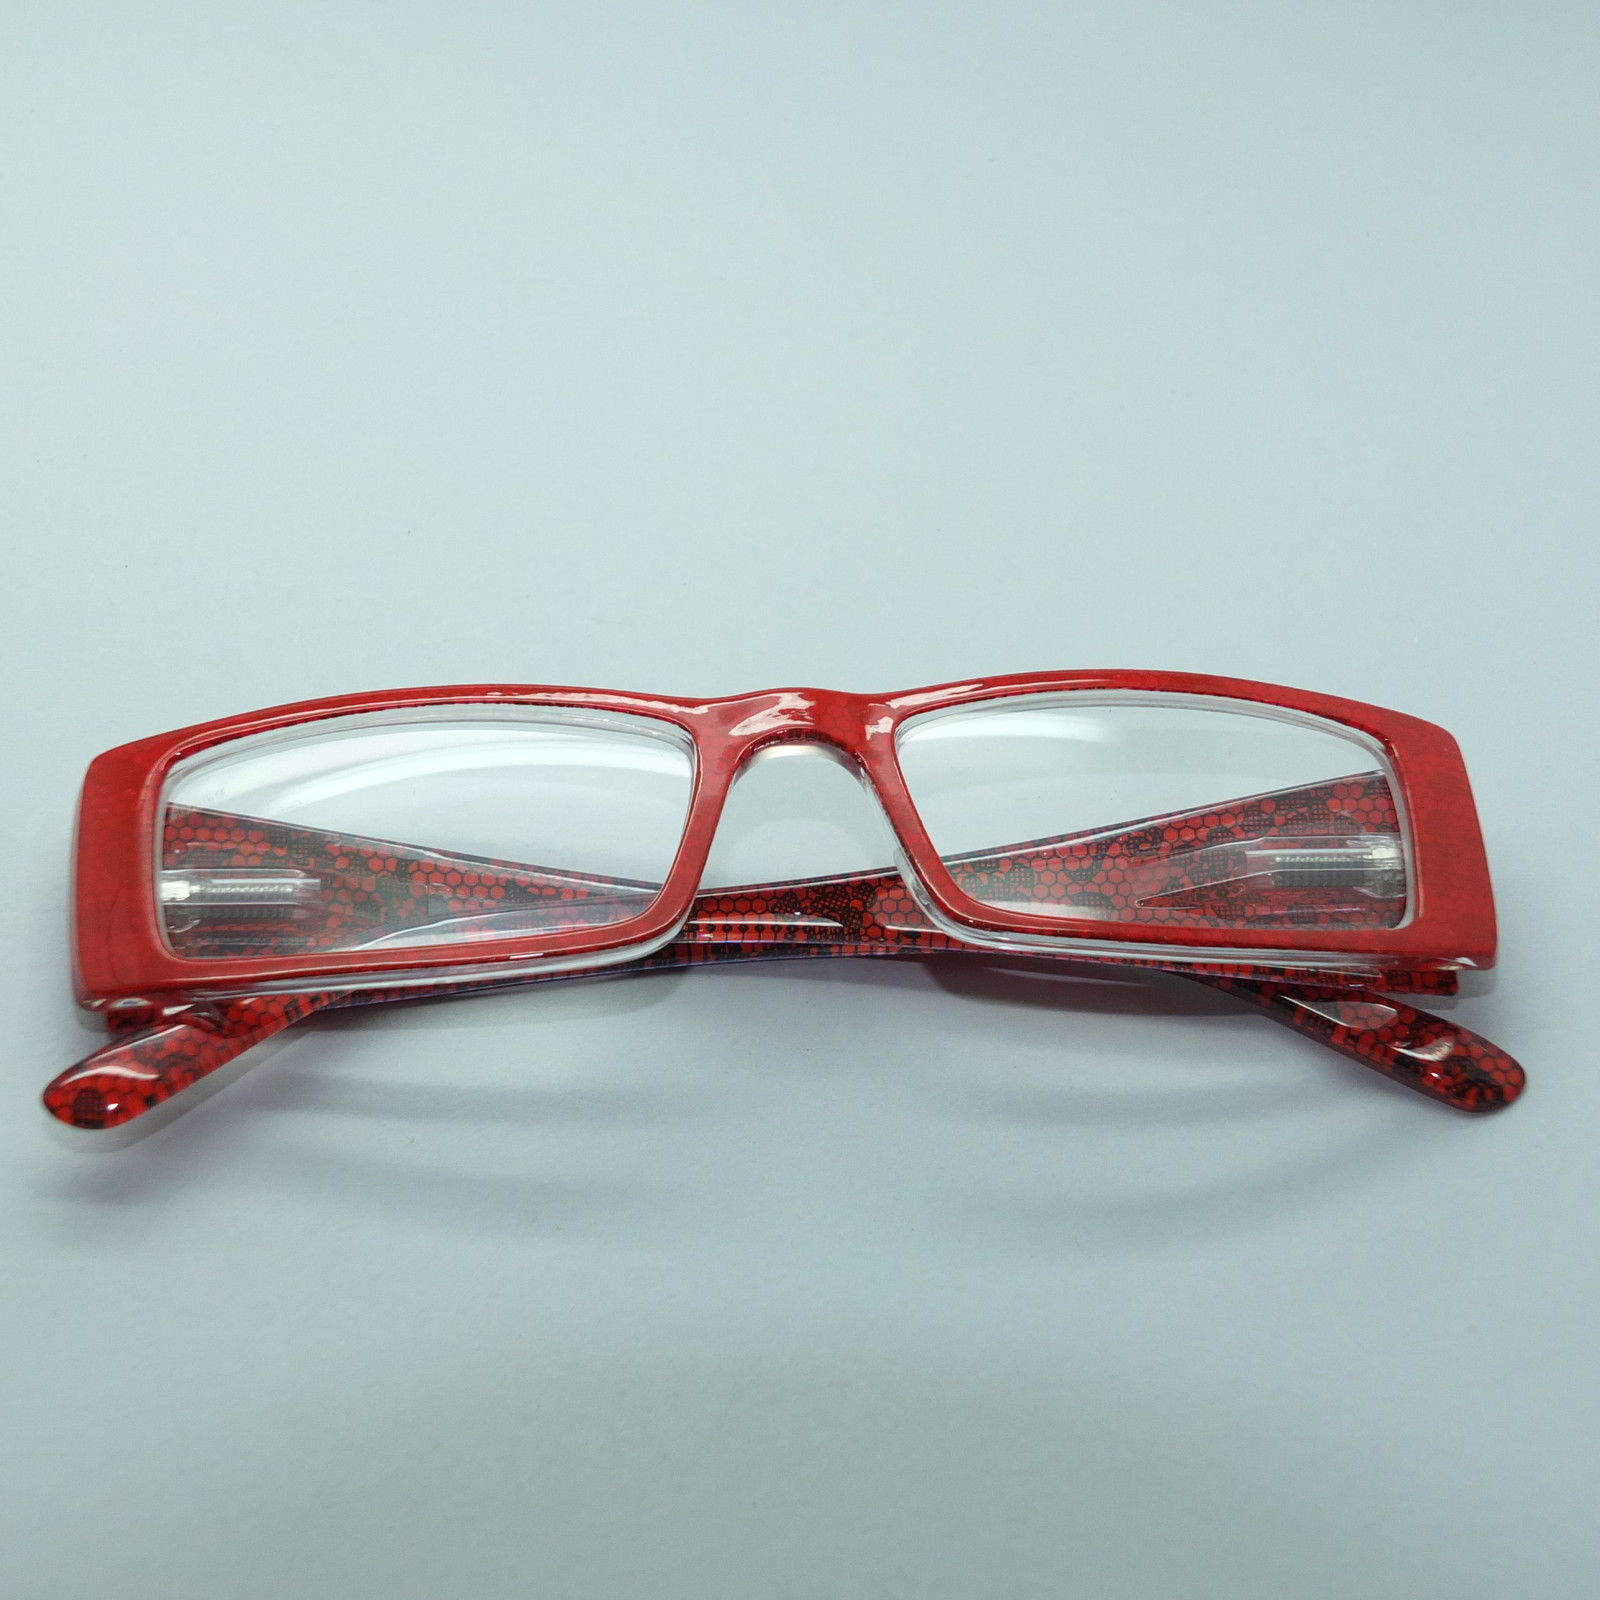 Big Red Frame Glasses : Great Big Power Red Frame Rectangle Reading Glasses +1.50 ...